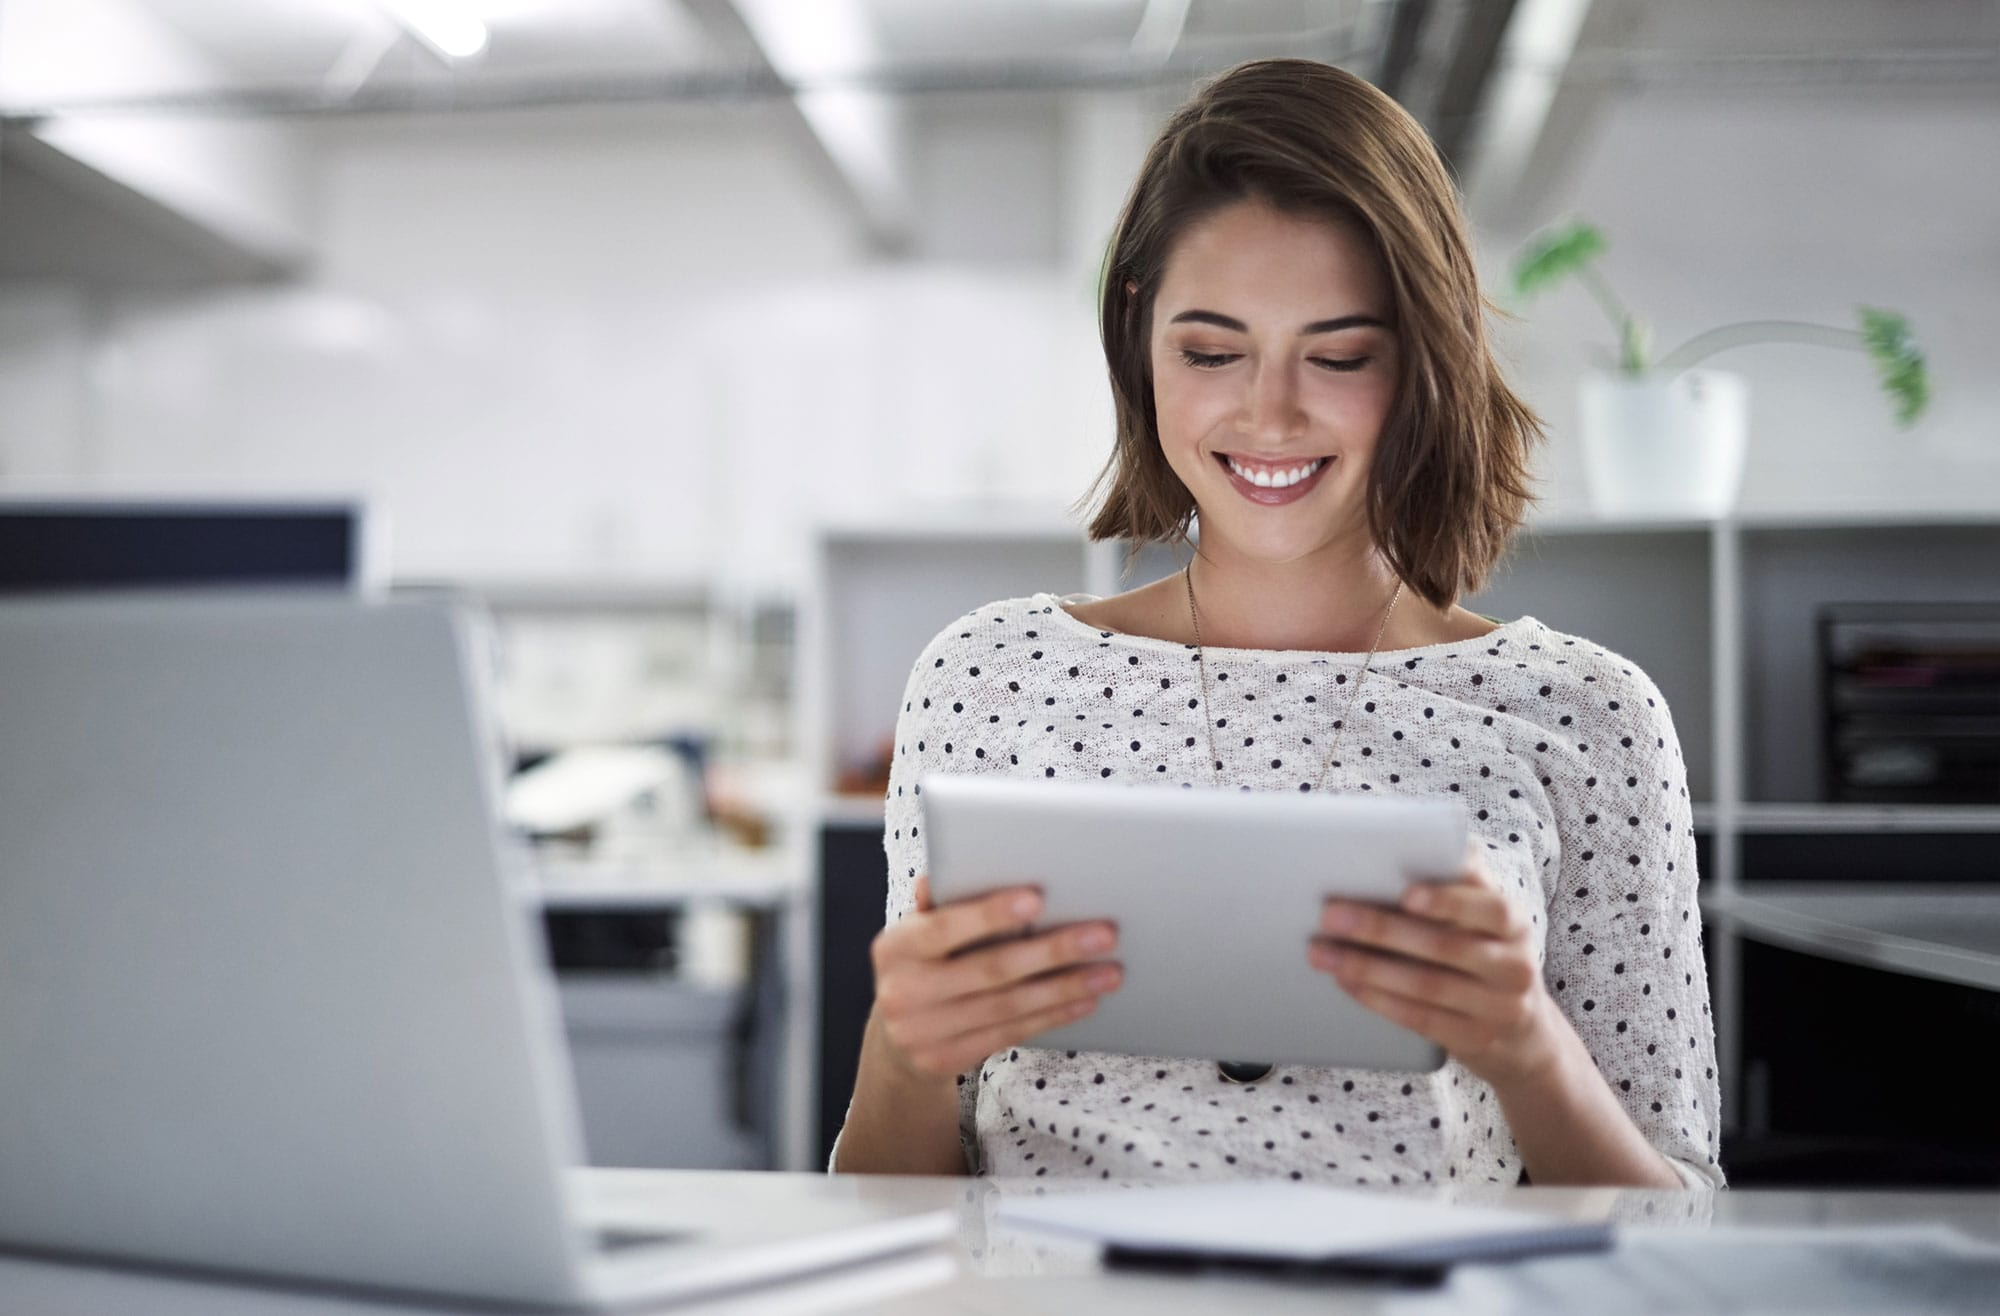 woman-looking-down-at-tablet